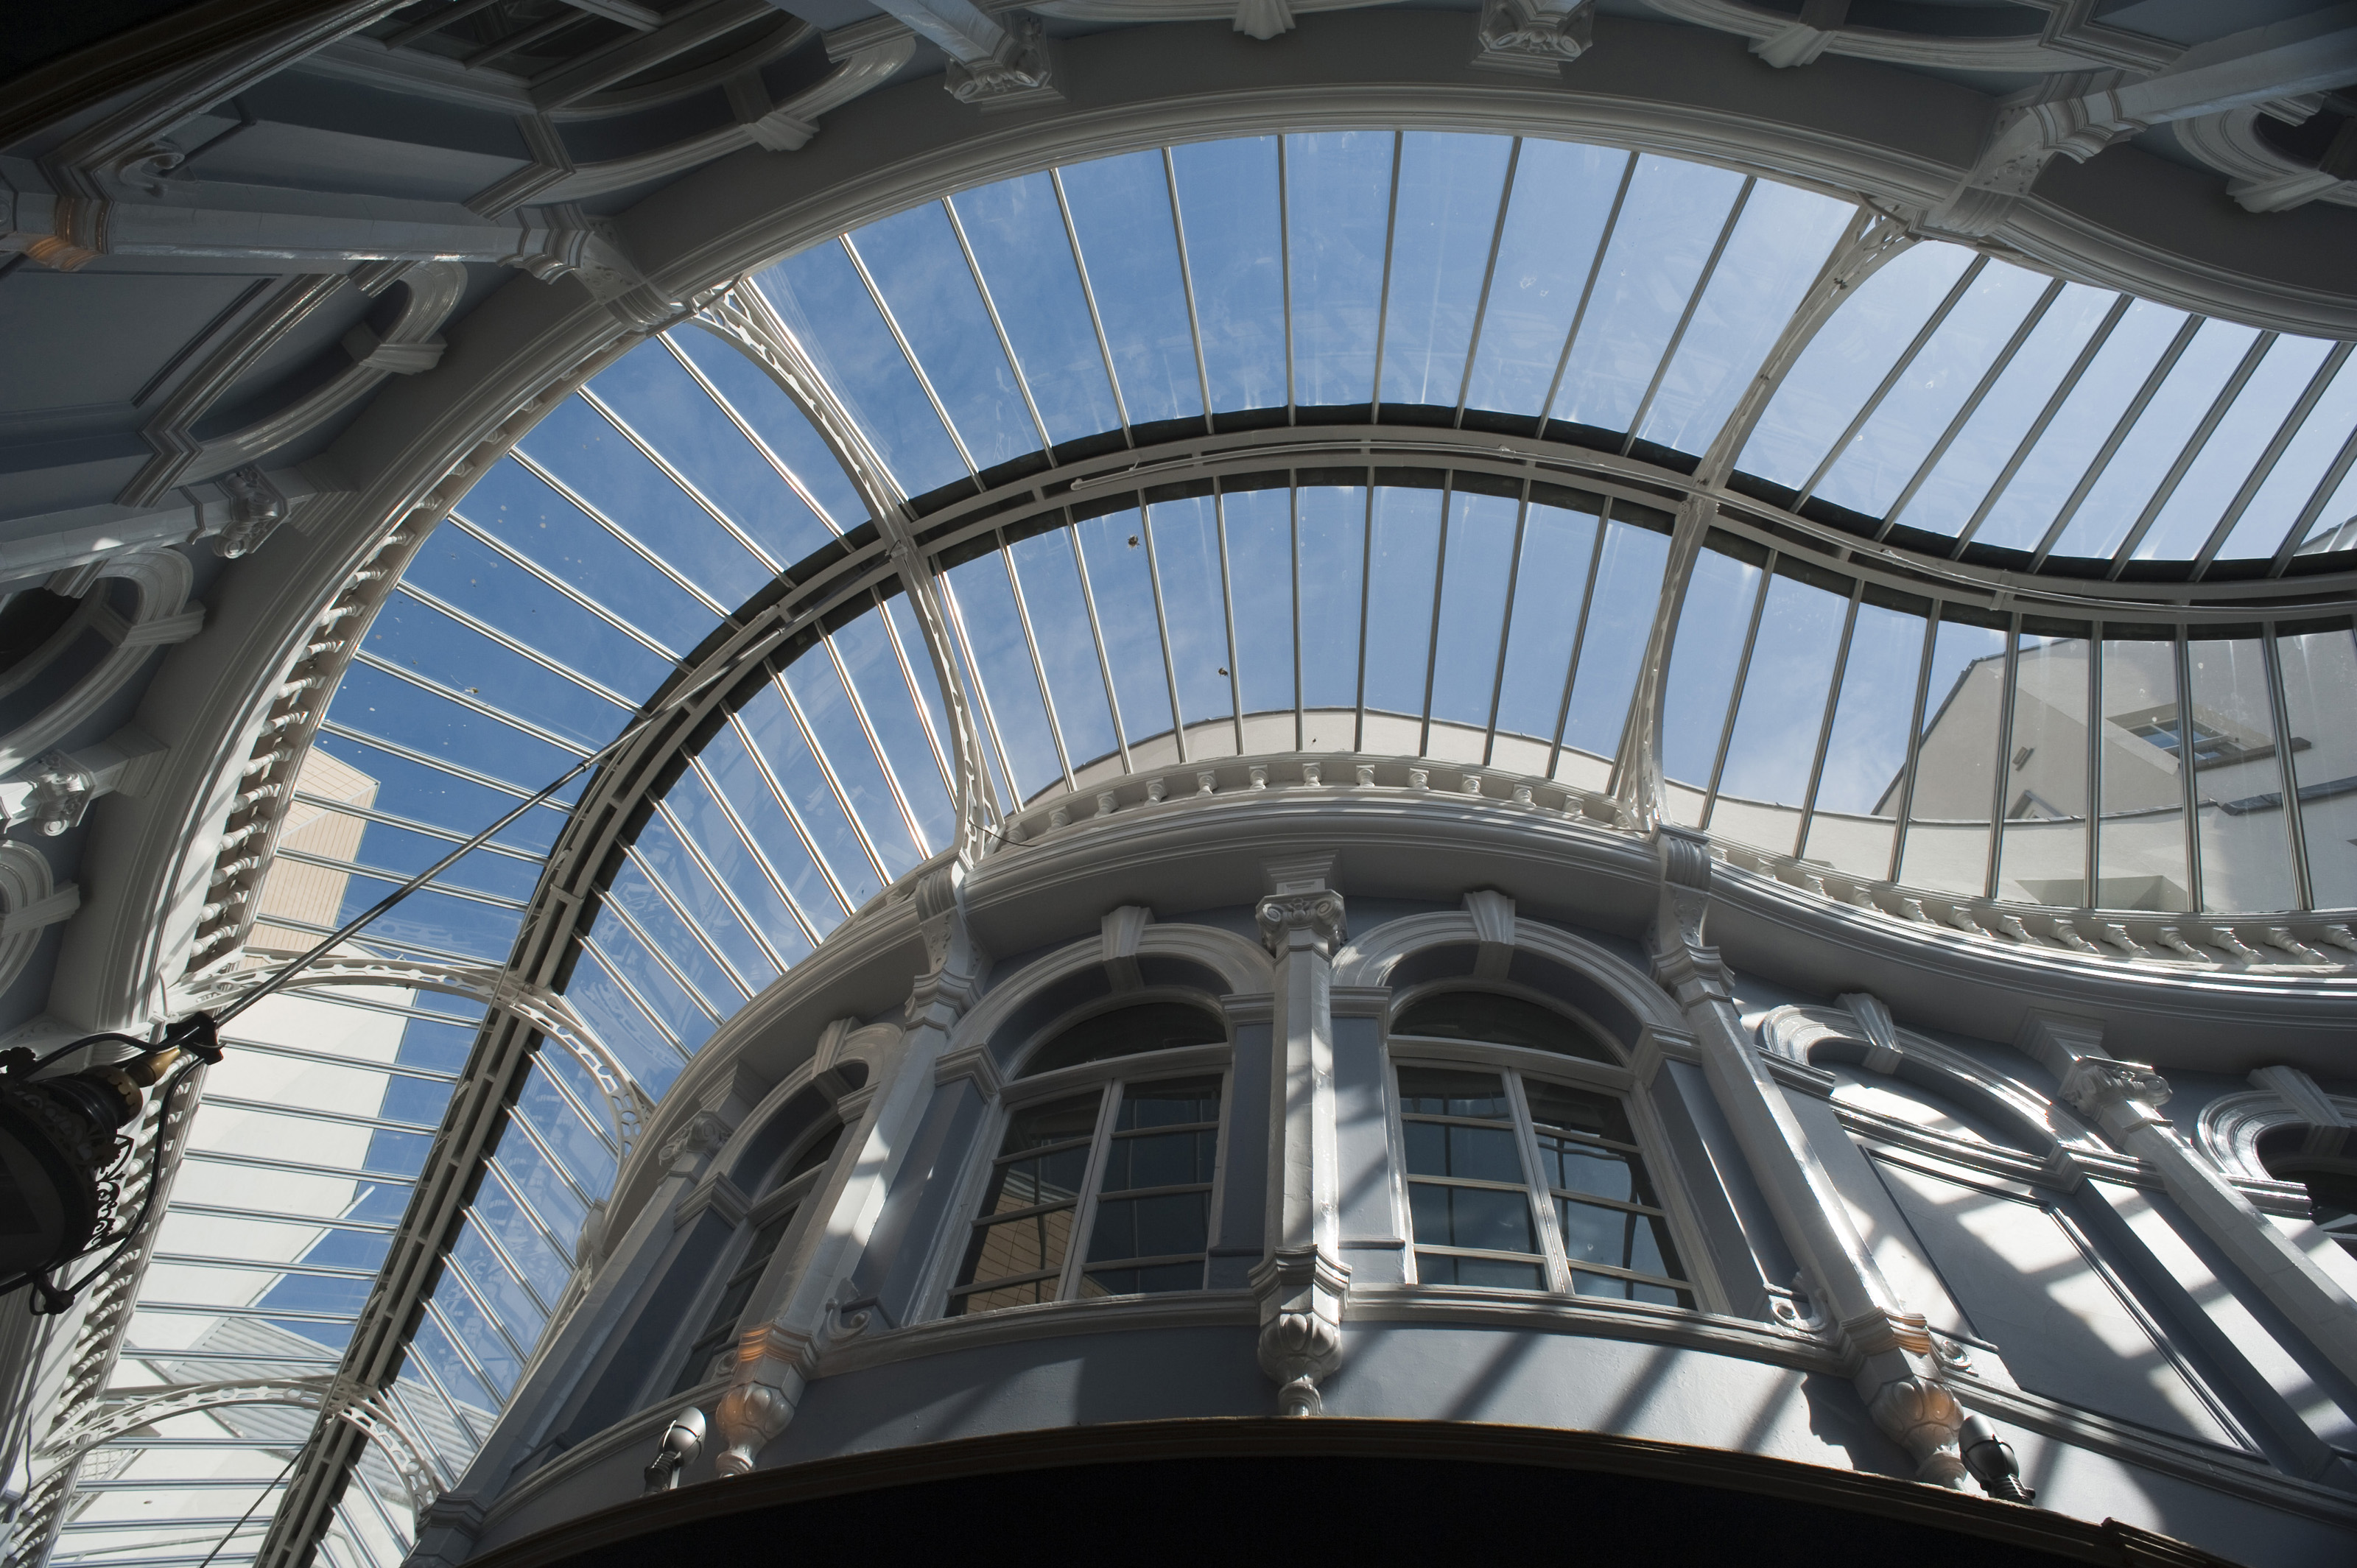 morgan arcade cardiff 7023 stockarch free stock photos